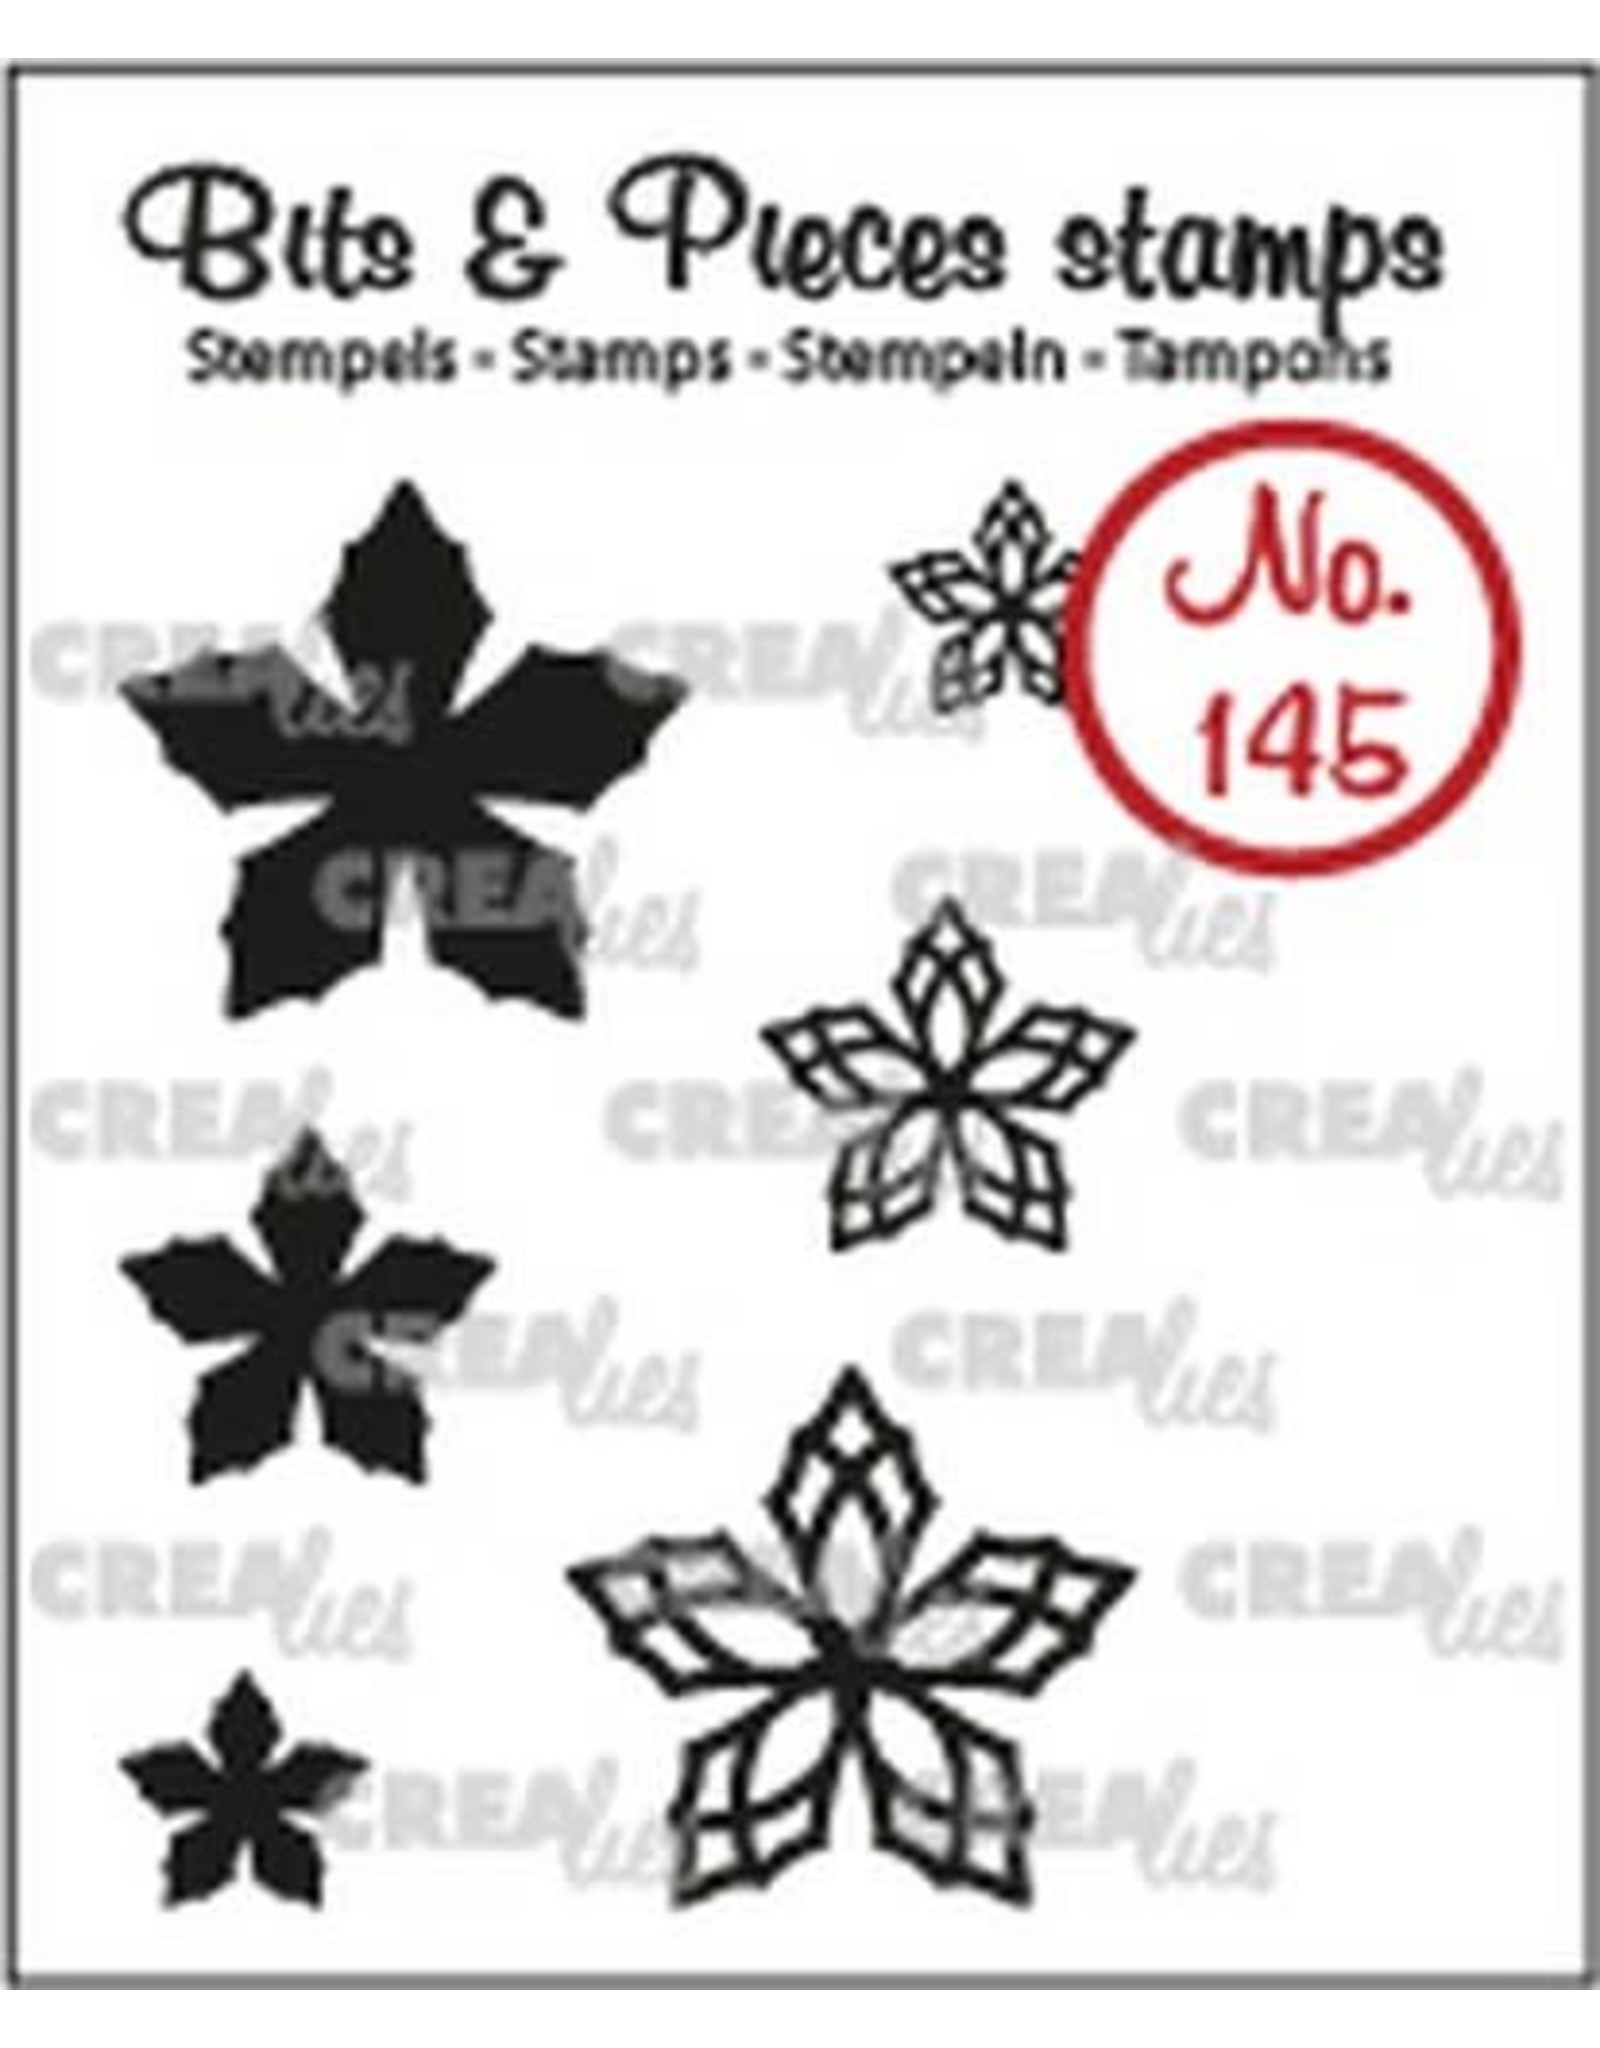 Crealies Crealies Clearstamp Bits & Pieces 6x Mini Bloemen 23 CLBP145 max. 20 mm